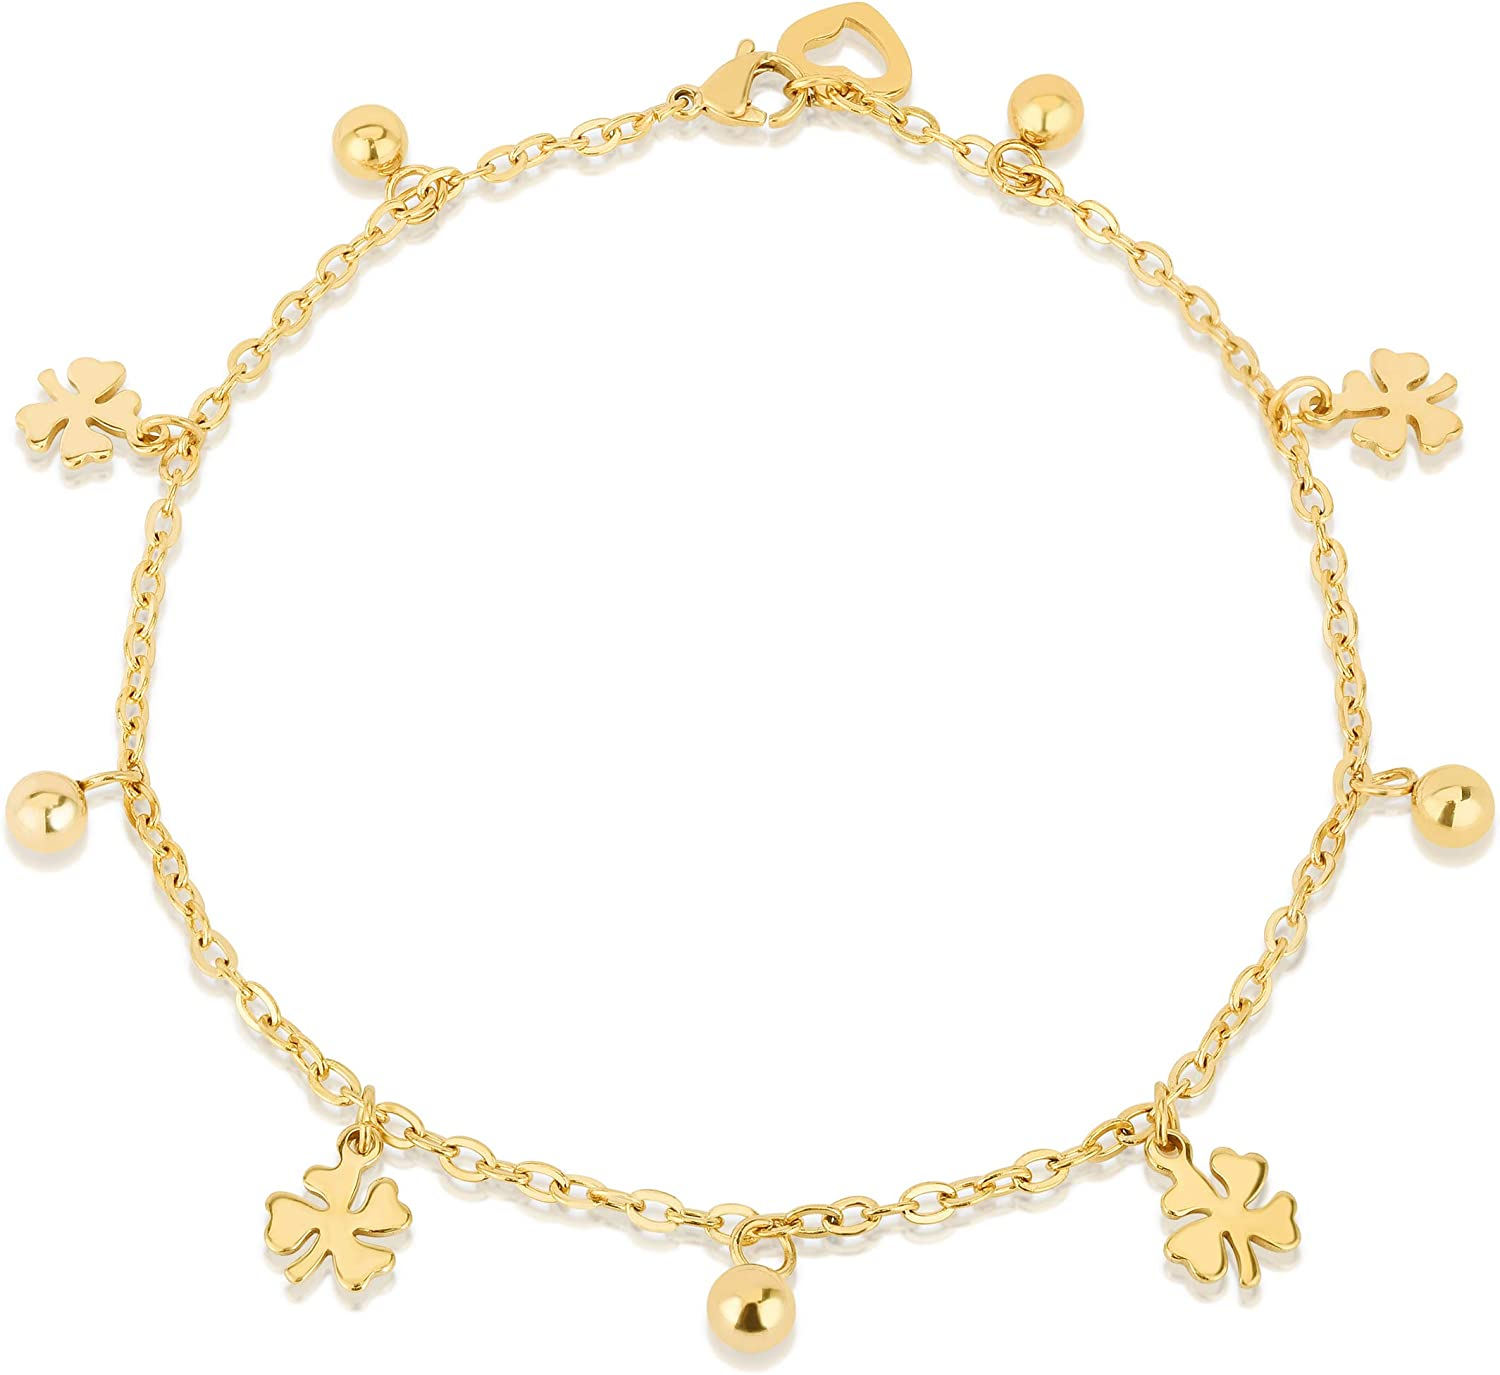 AMDXD Anklets for Women Indian Gold Plated Round Shape Anklet Chain Summer Jewelry for Women Rose Gold 21CM